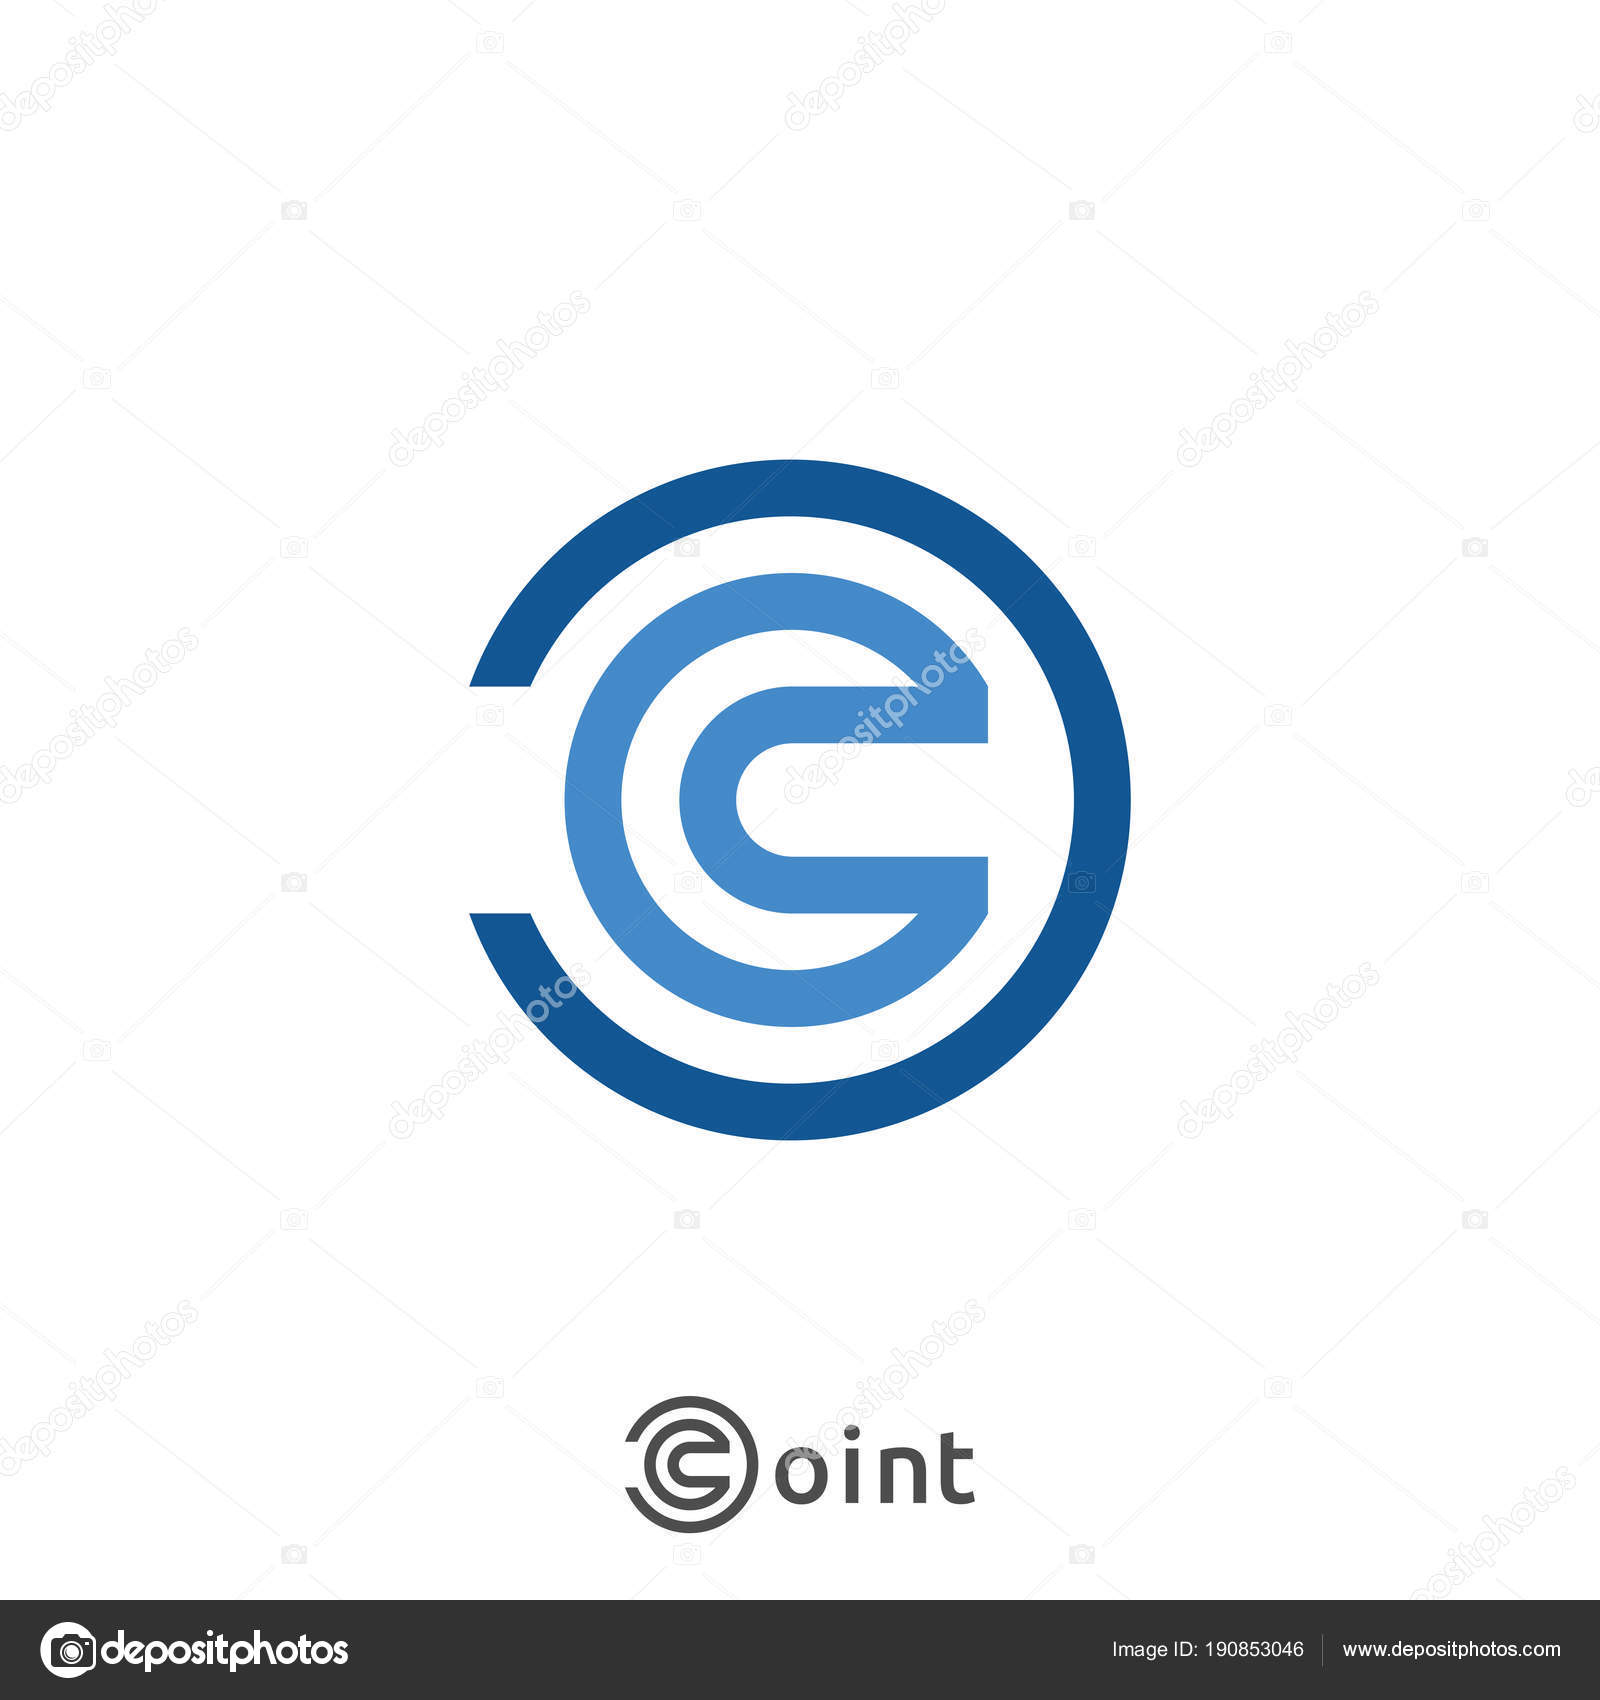 Letter c logo icon abstract alphabet sign design for business letter c logo icon abstract alphabet sign design for business company vector illustration biocorpaavc Images